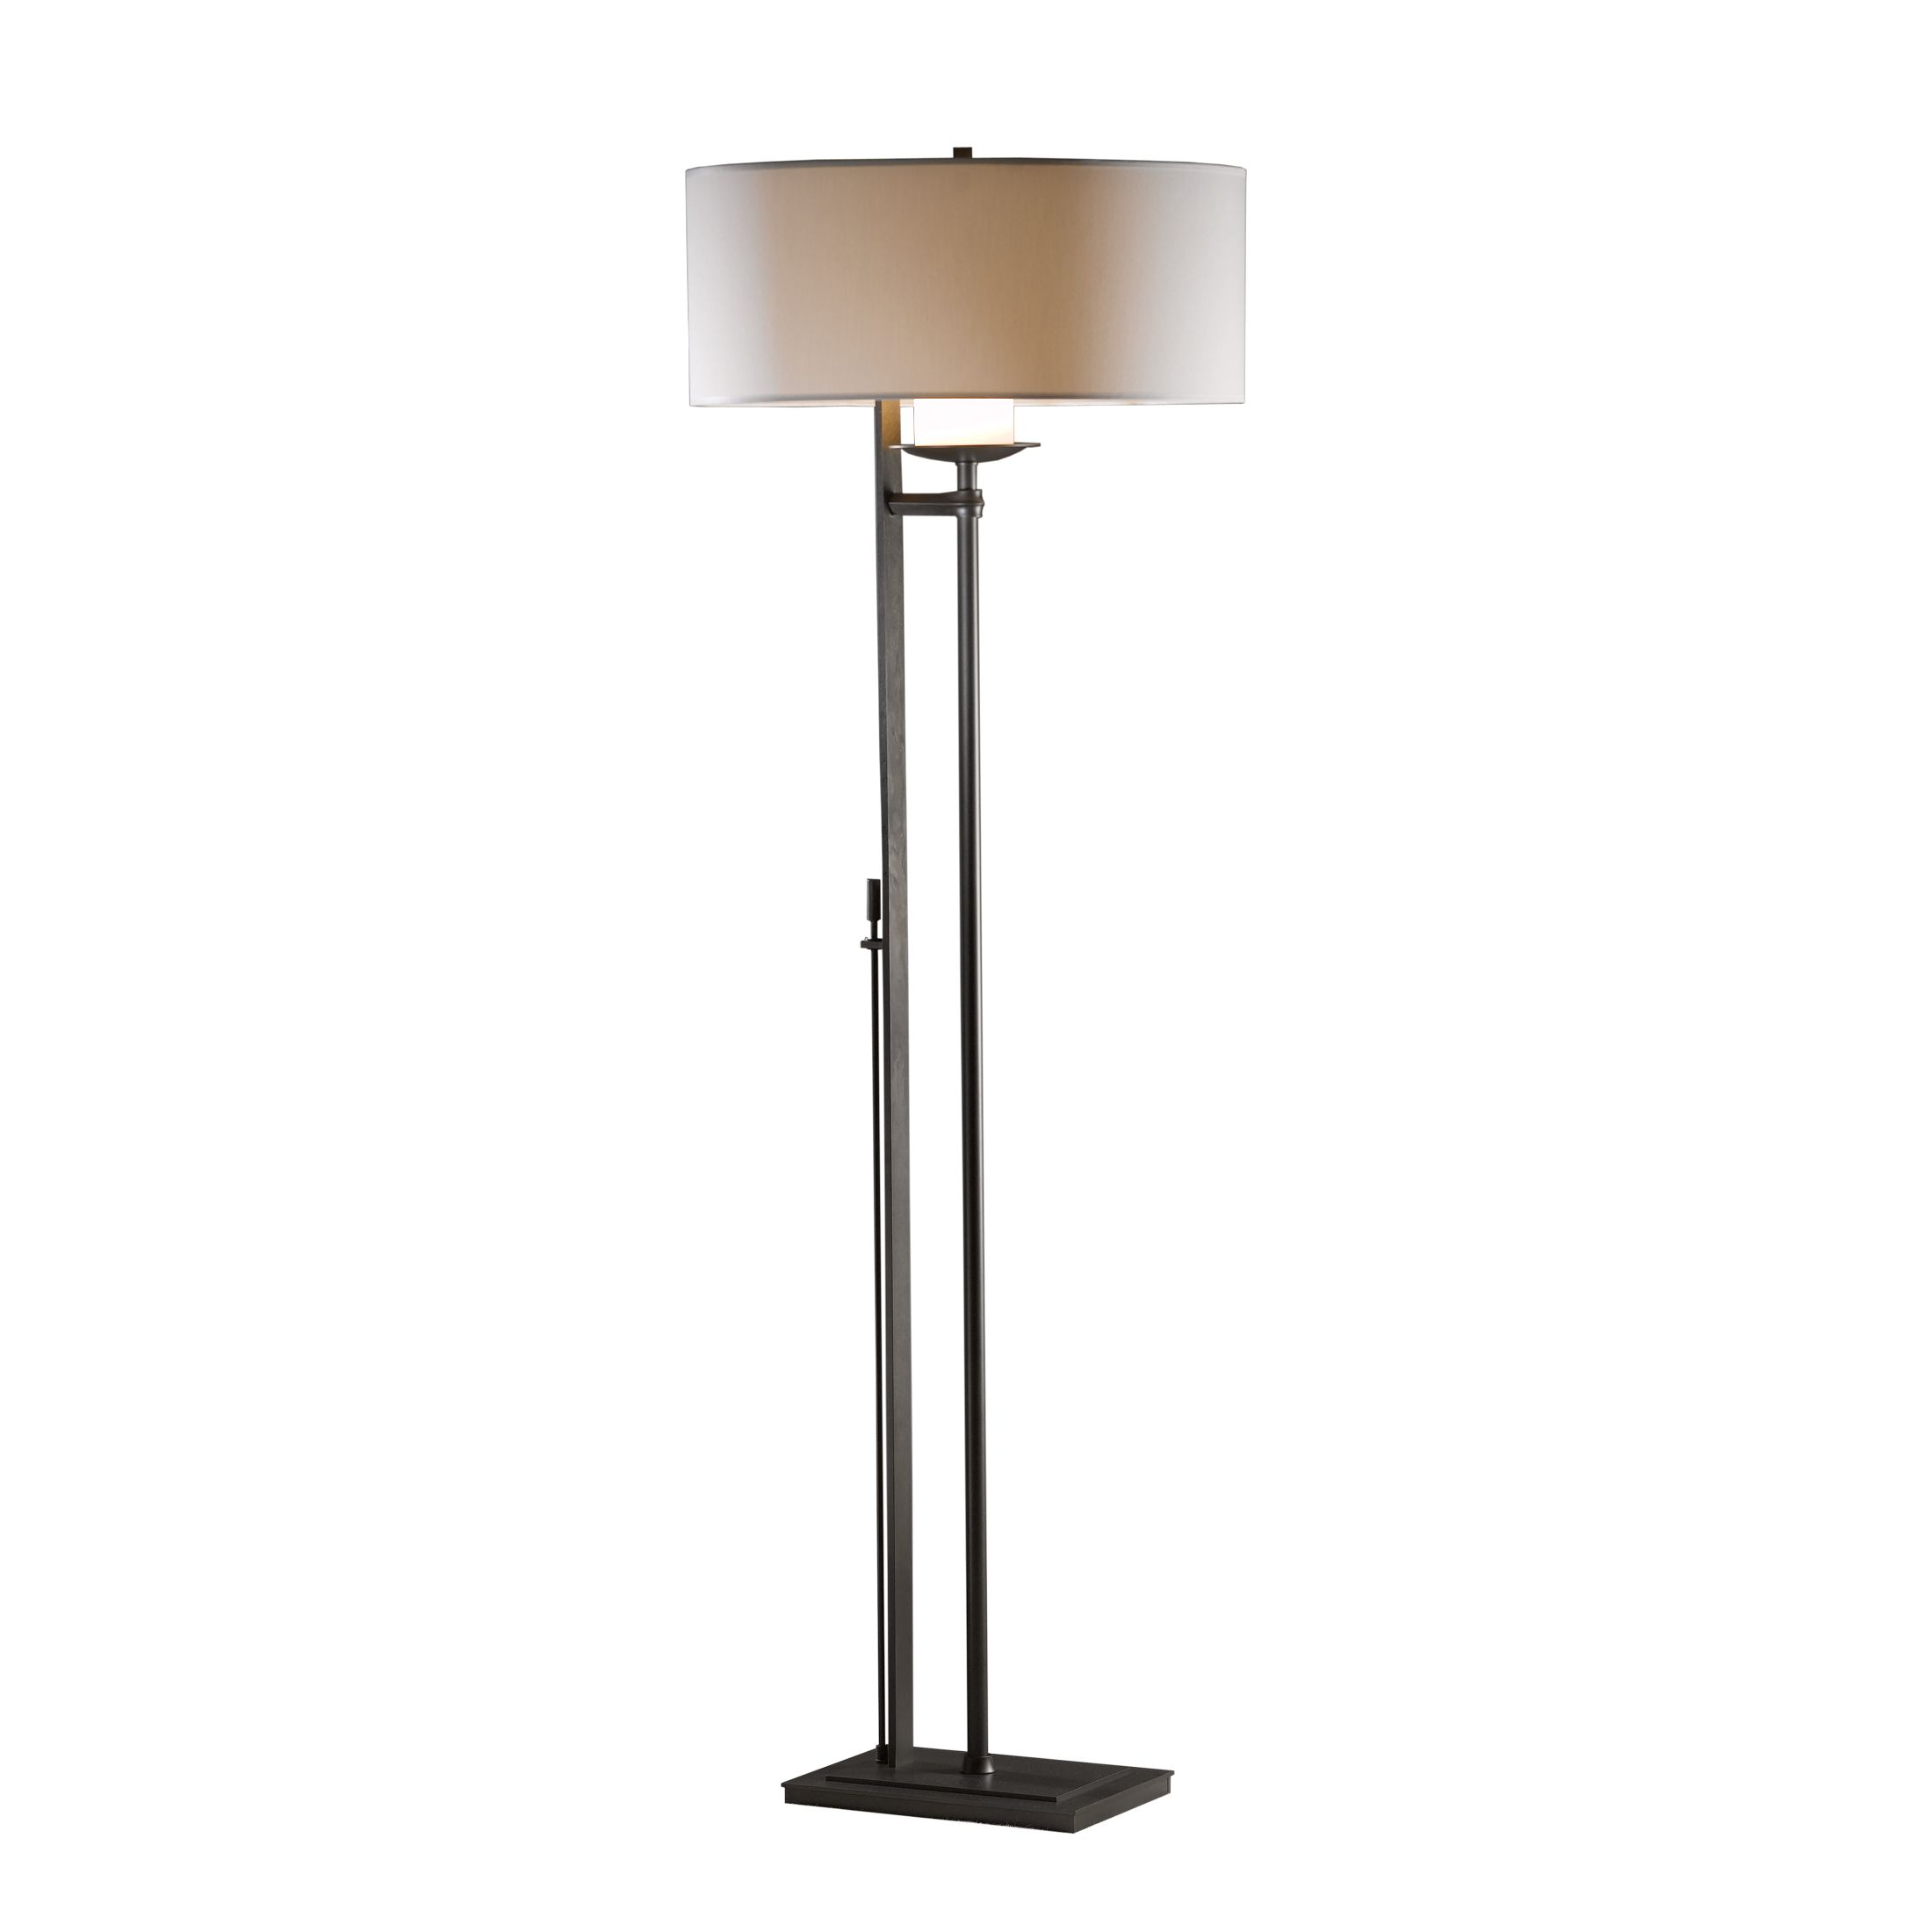 Thumbnail for Rook Floor Lamp